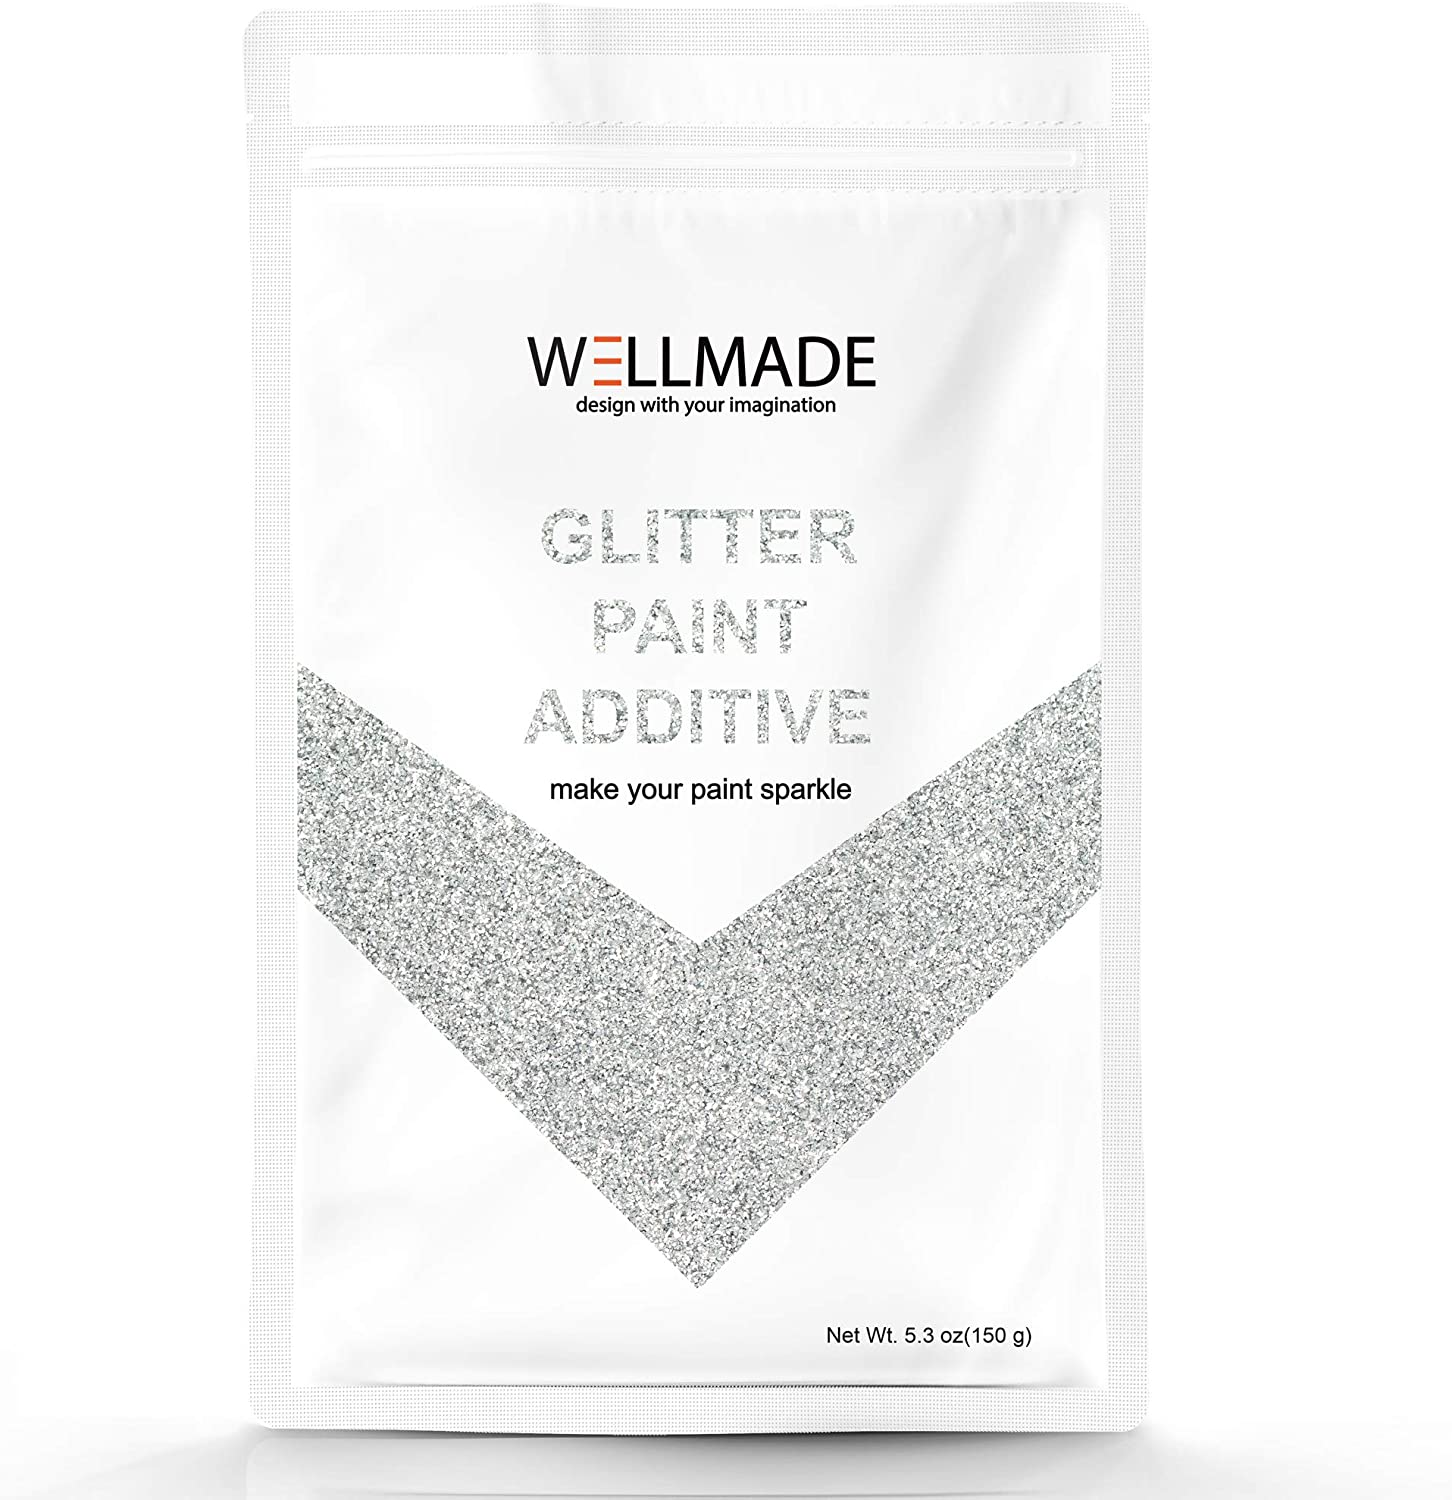 150g/5.3oz Wellmade Glitter Paint Additive for Wall Paint-Interior/Exterior Wall, Ceiling, Wood, Metal, Varnish, Dead Flat, DIY Art and Craft (150g/1bag, Silver)